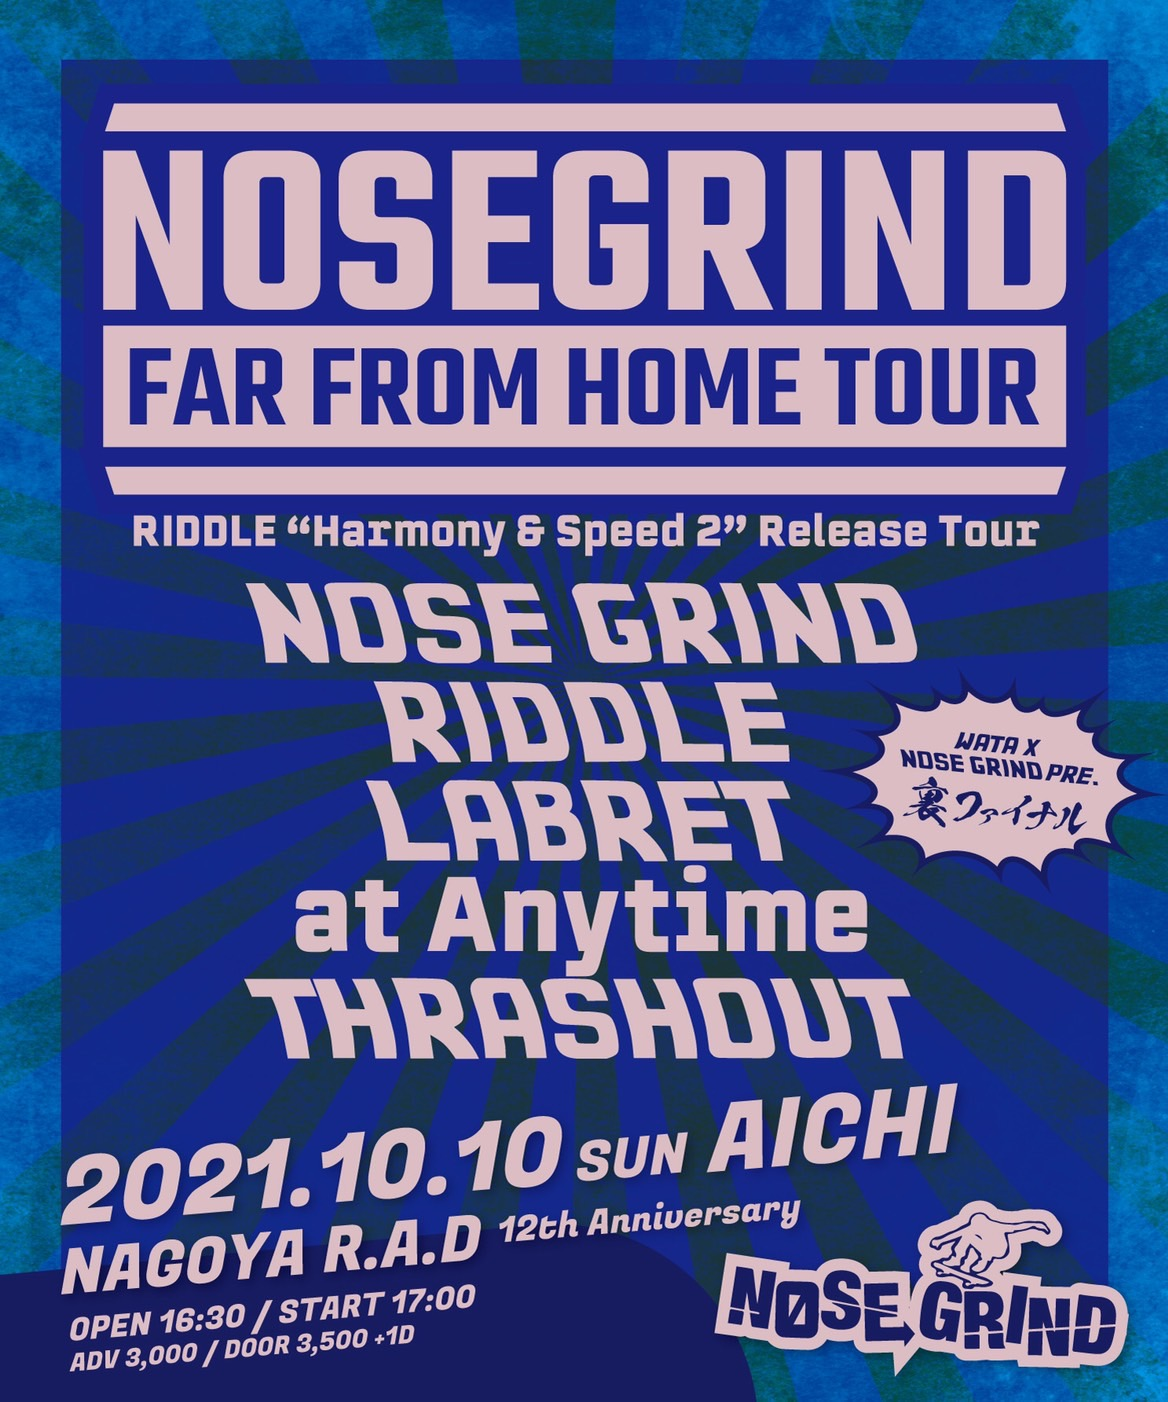 """wata x NOSE GRIND pre. NOSE GRIND """"FAR FROM HOME TOUR""""裏Final RIDDLE """"Harmony & Speed 2"""" Release Tour R.A.D 12th Anniversary"""